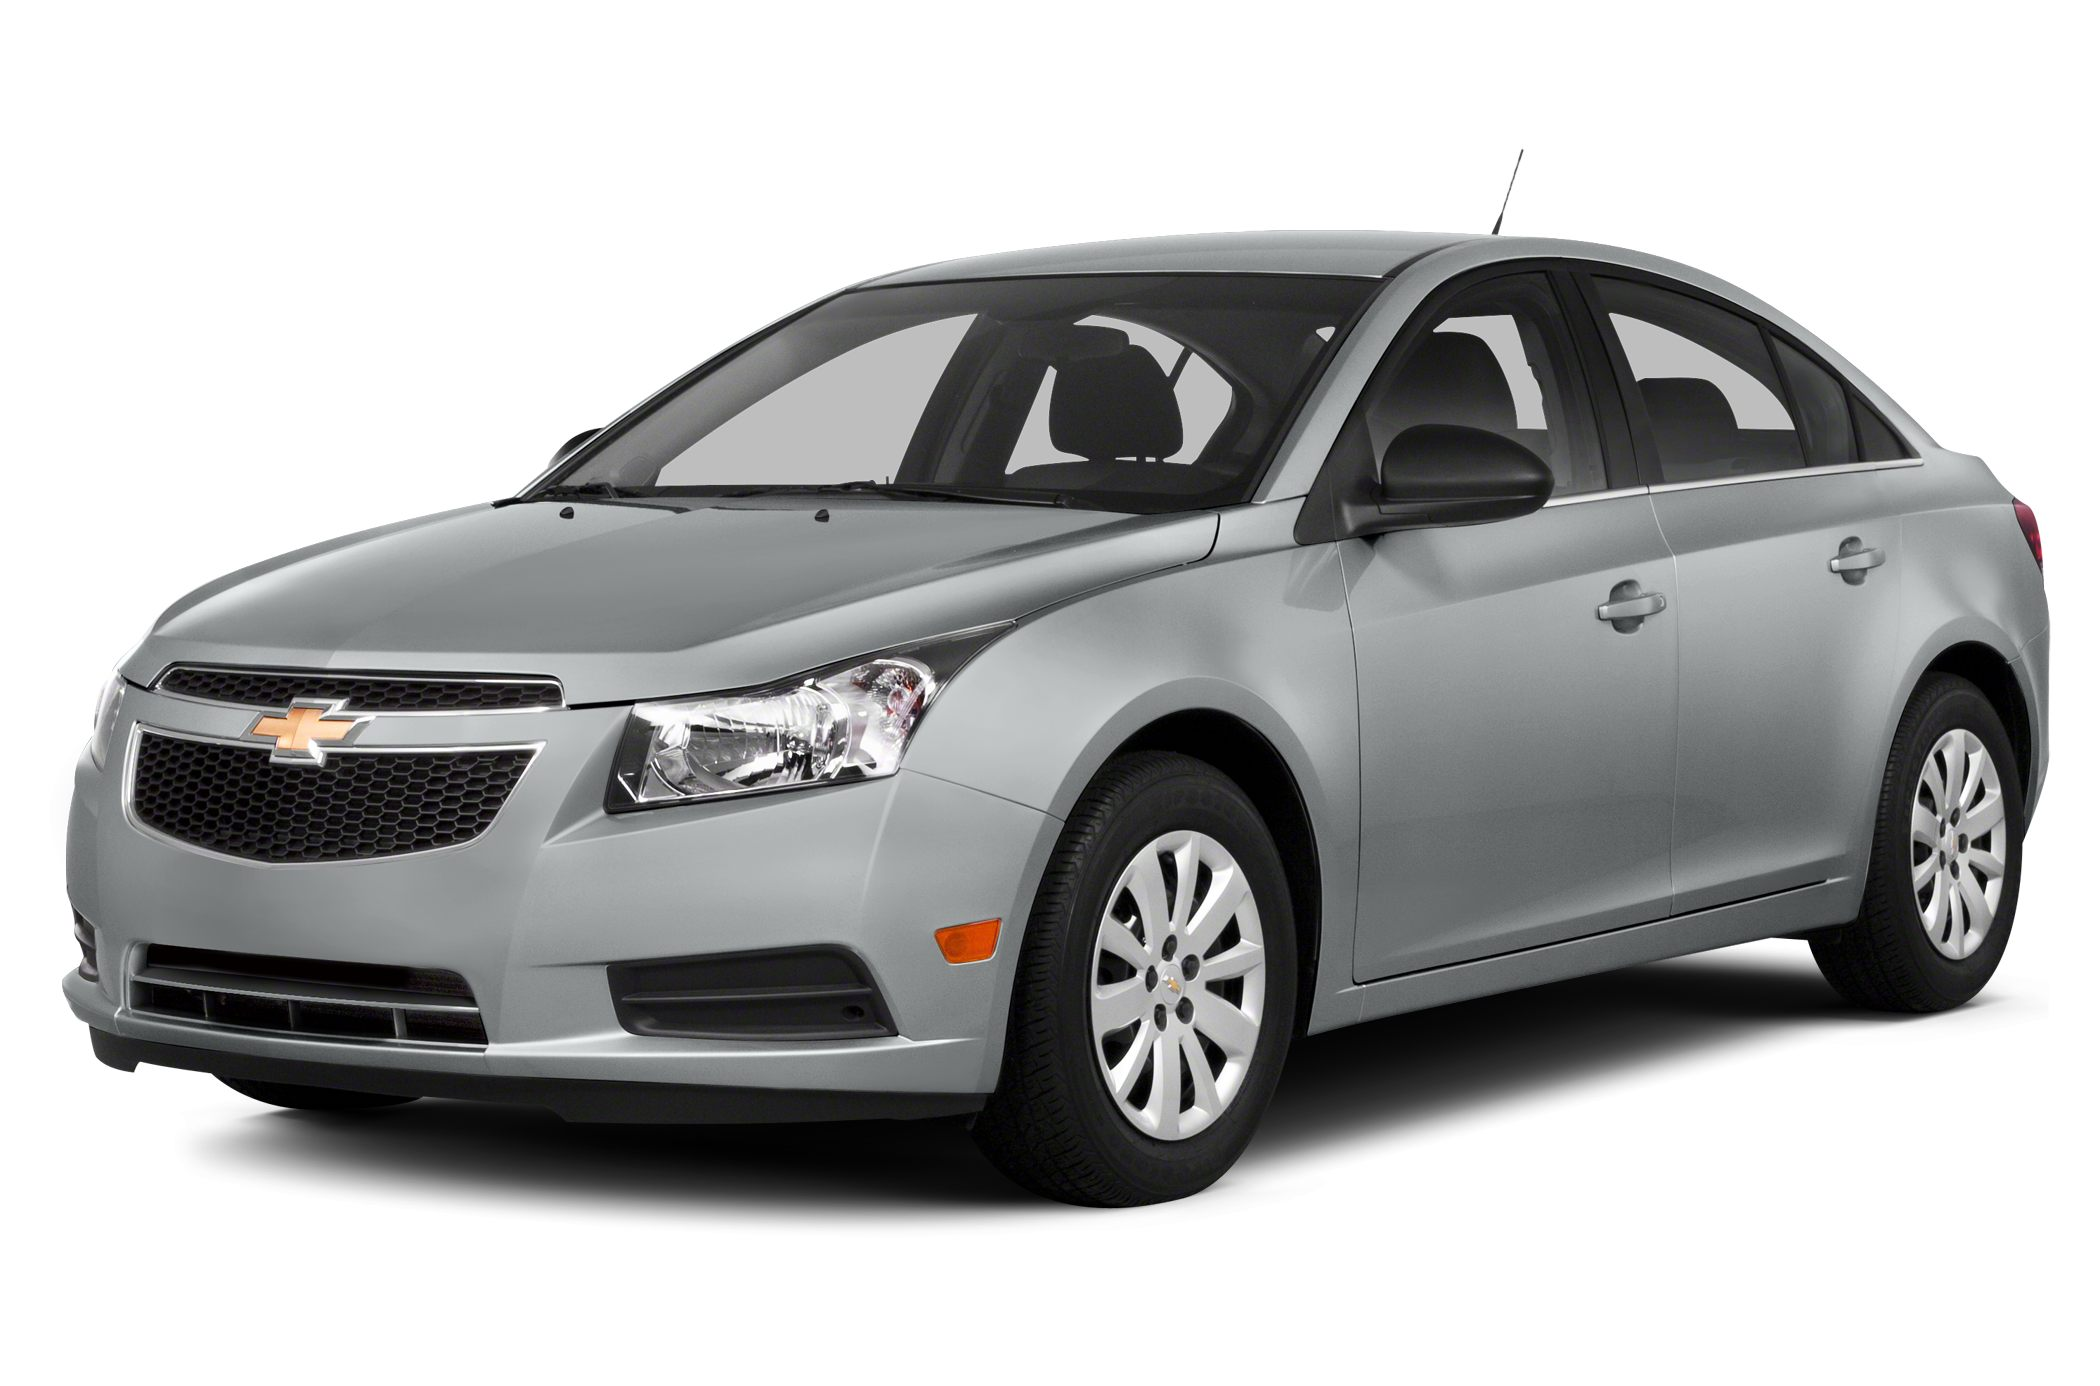 2014 Chevrolet Cruze 2LT Sedan for sale in Galax for $16,999 with 19,828 miles.